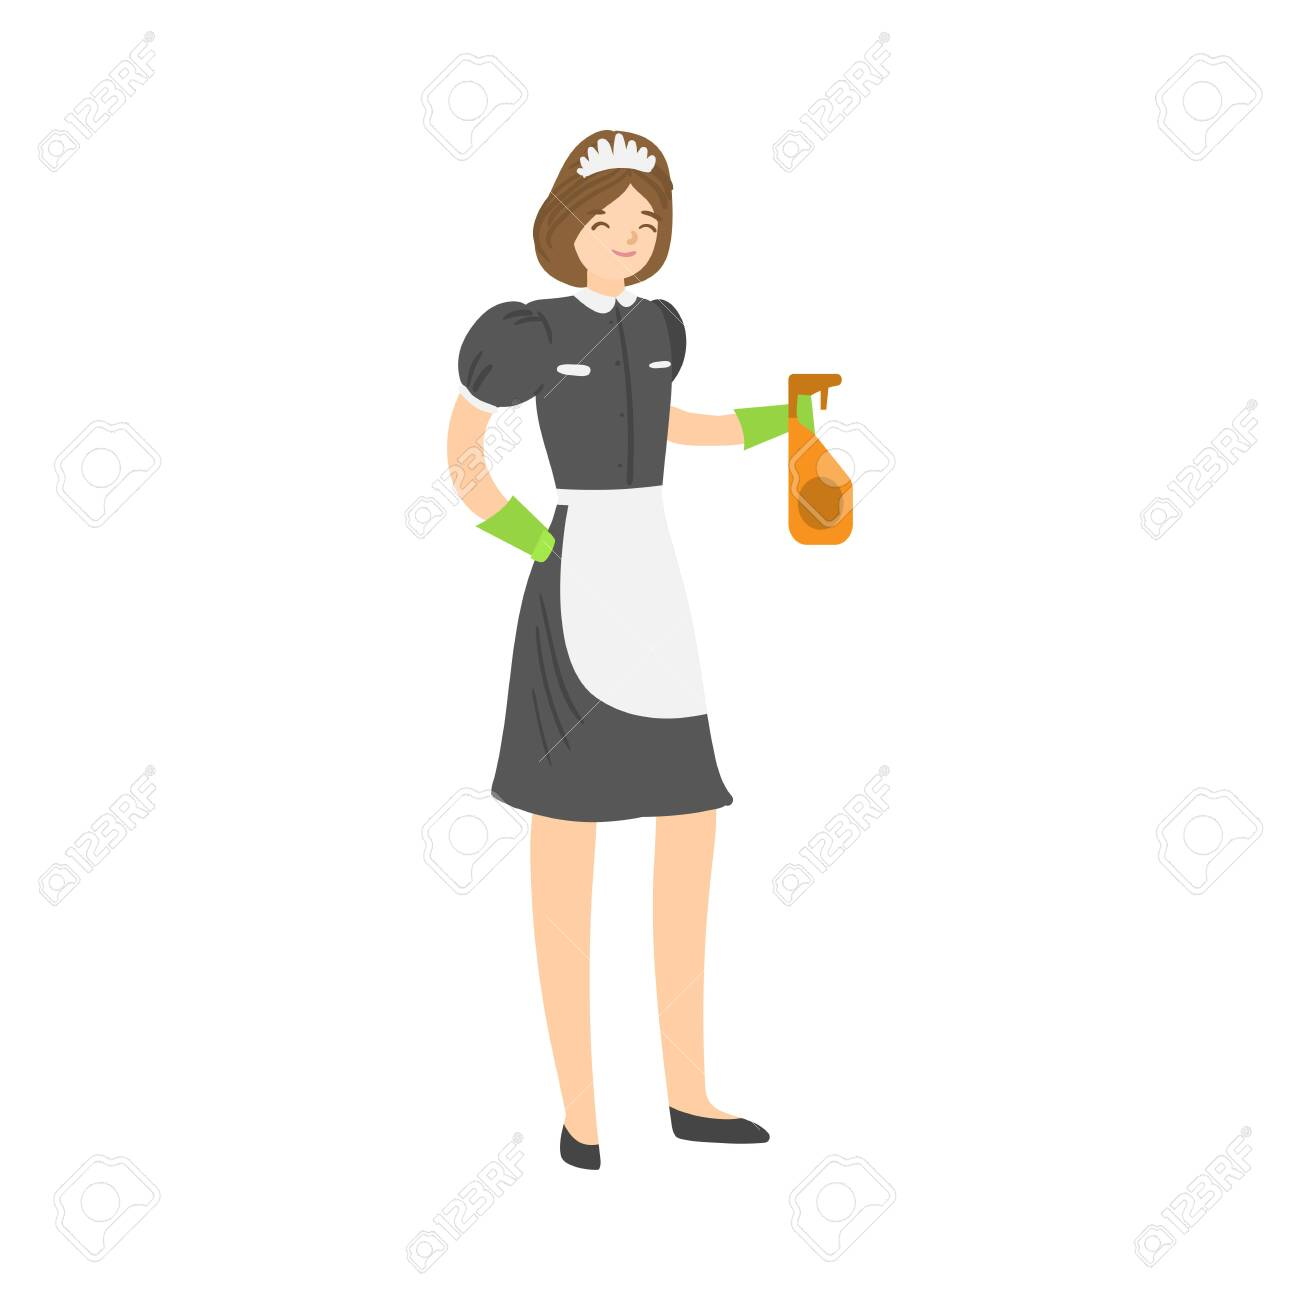 Brown-haired smiling housemaid posing with a squirting spray bottle. Vector illustration in flat cartoon style. - 142848085